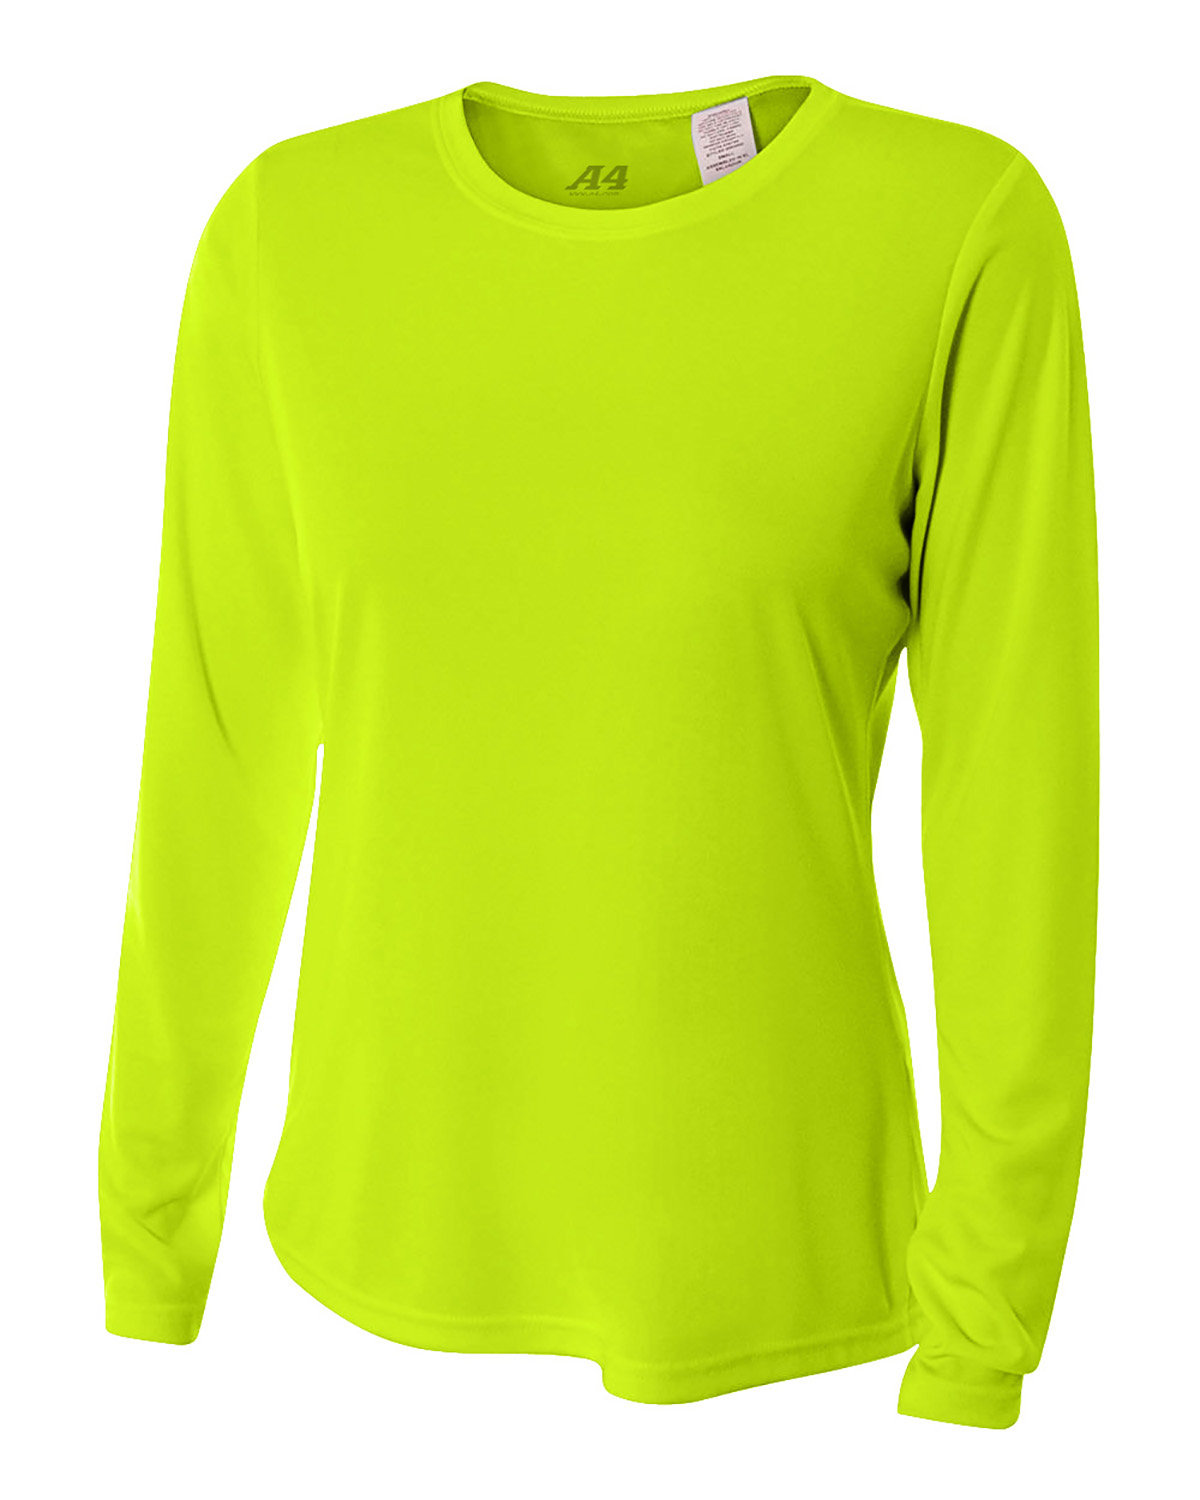 A4 Ladies' Long Sleeve Cooling Performance Crew Shirt LIME